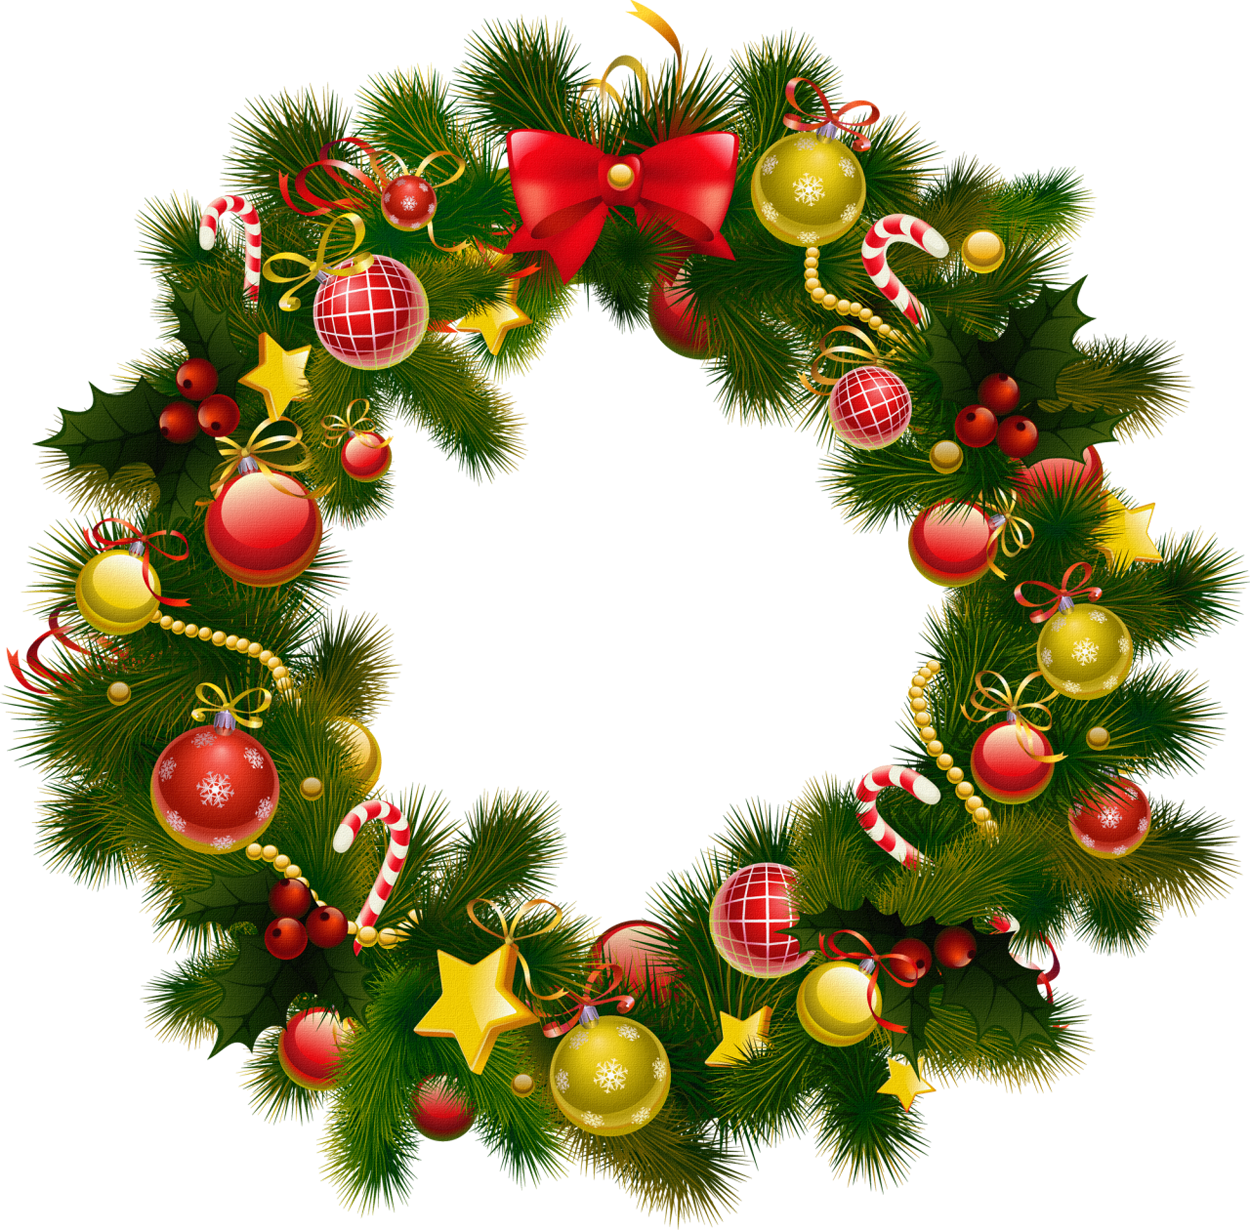 Christmas wreath border png. Photo frame gallery yopriceville